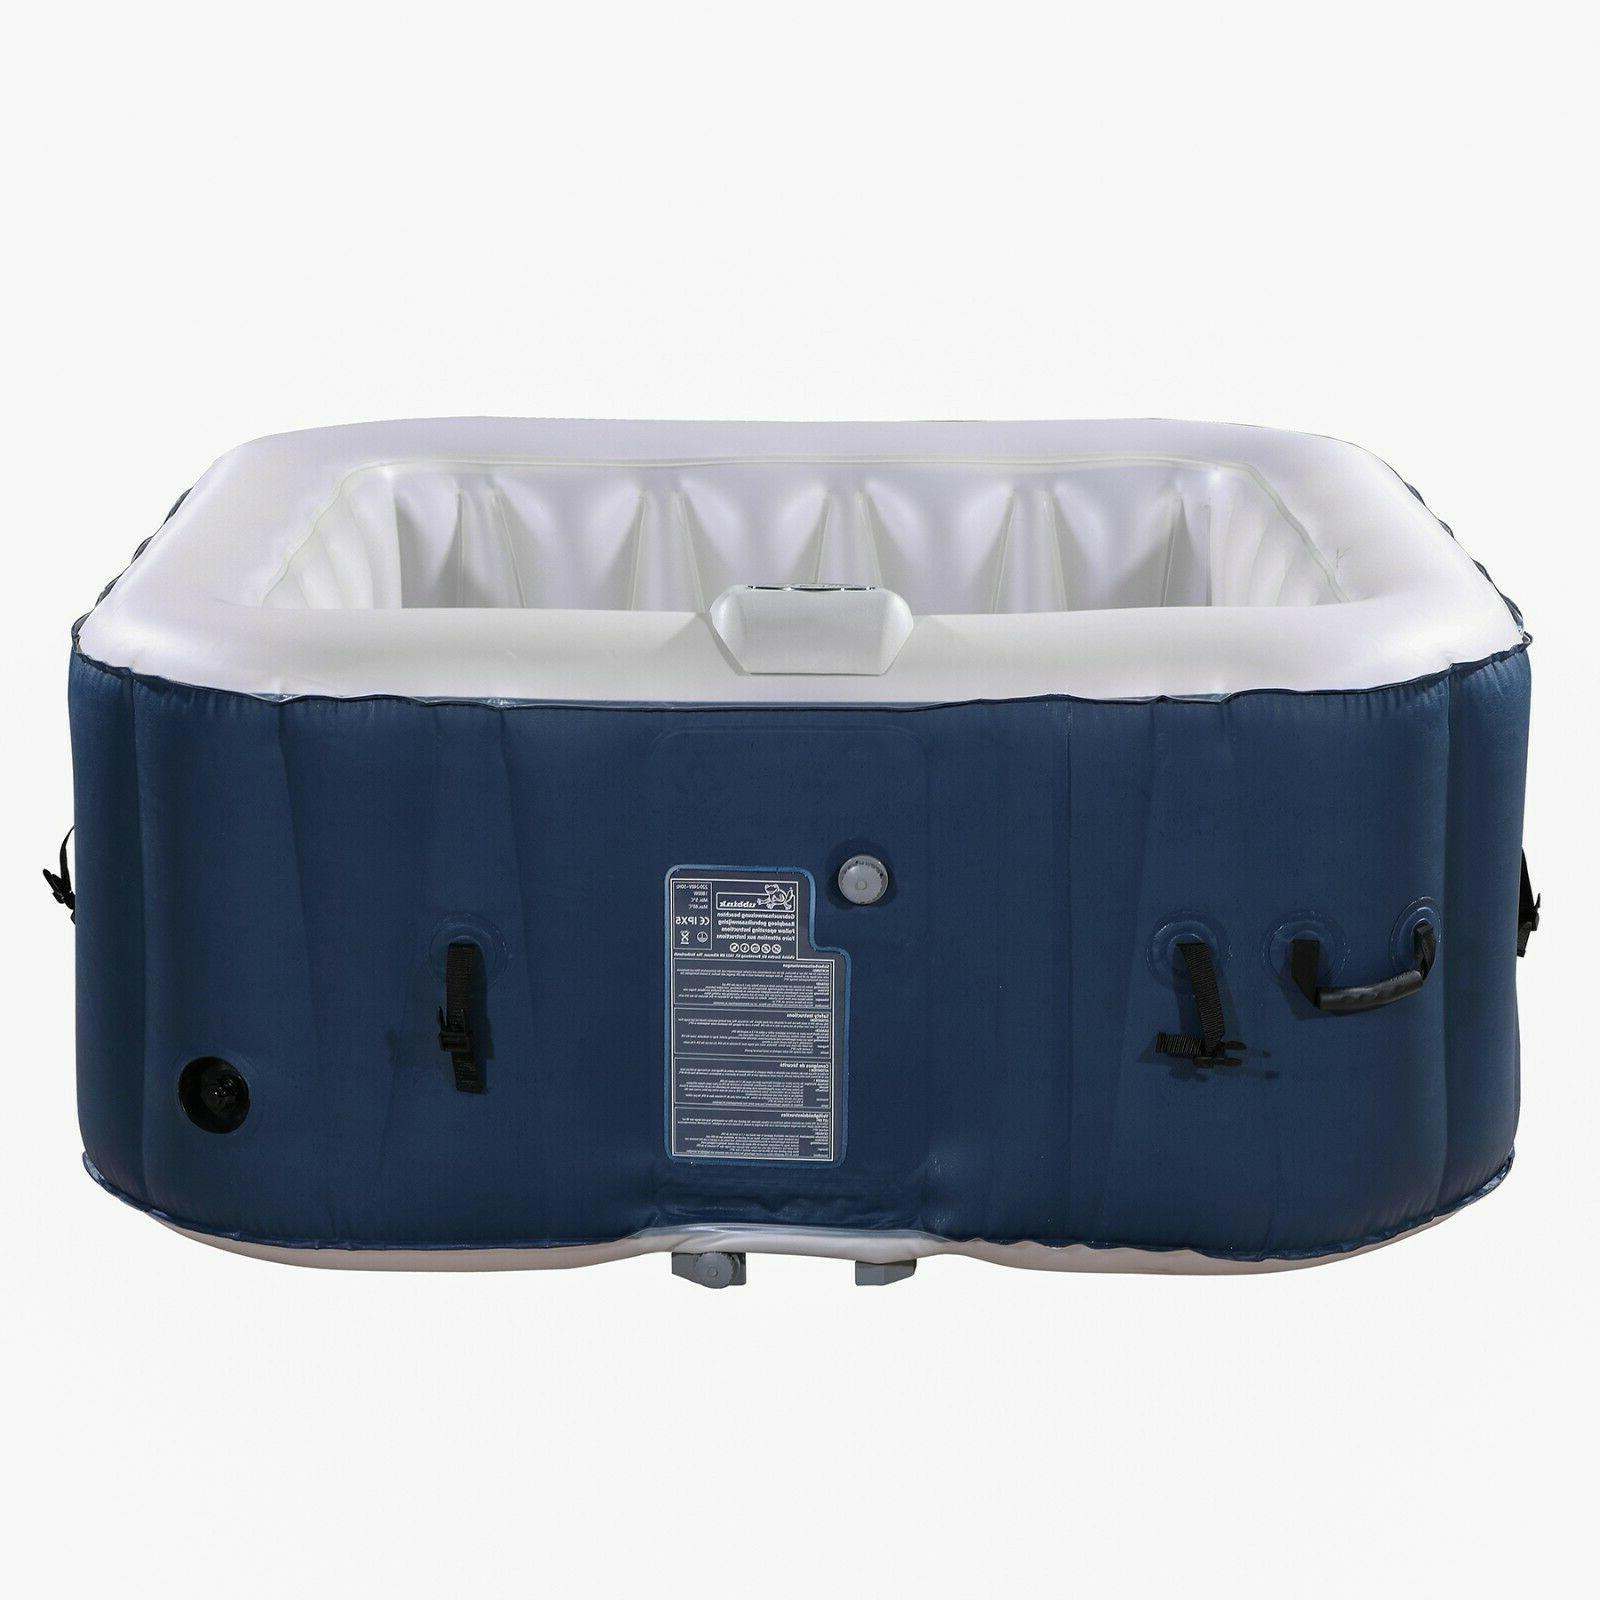 Inflatable Hot 2-4 Person Blow Spa w Bubble Jets